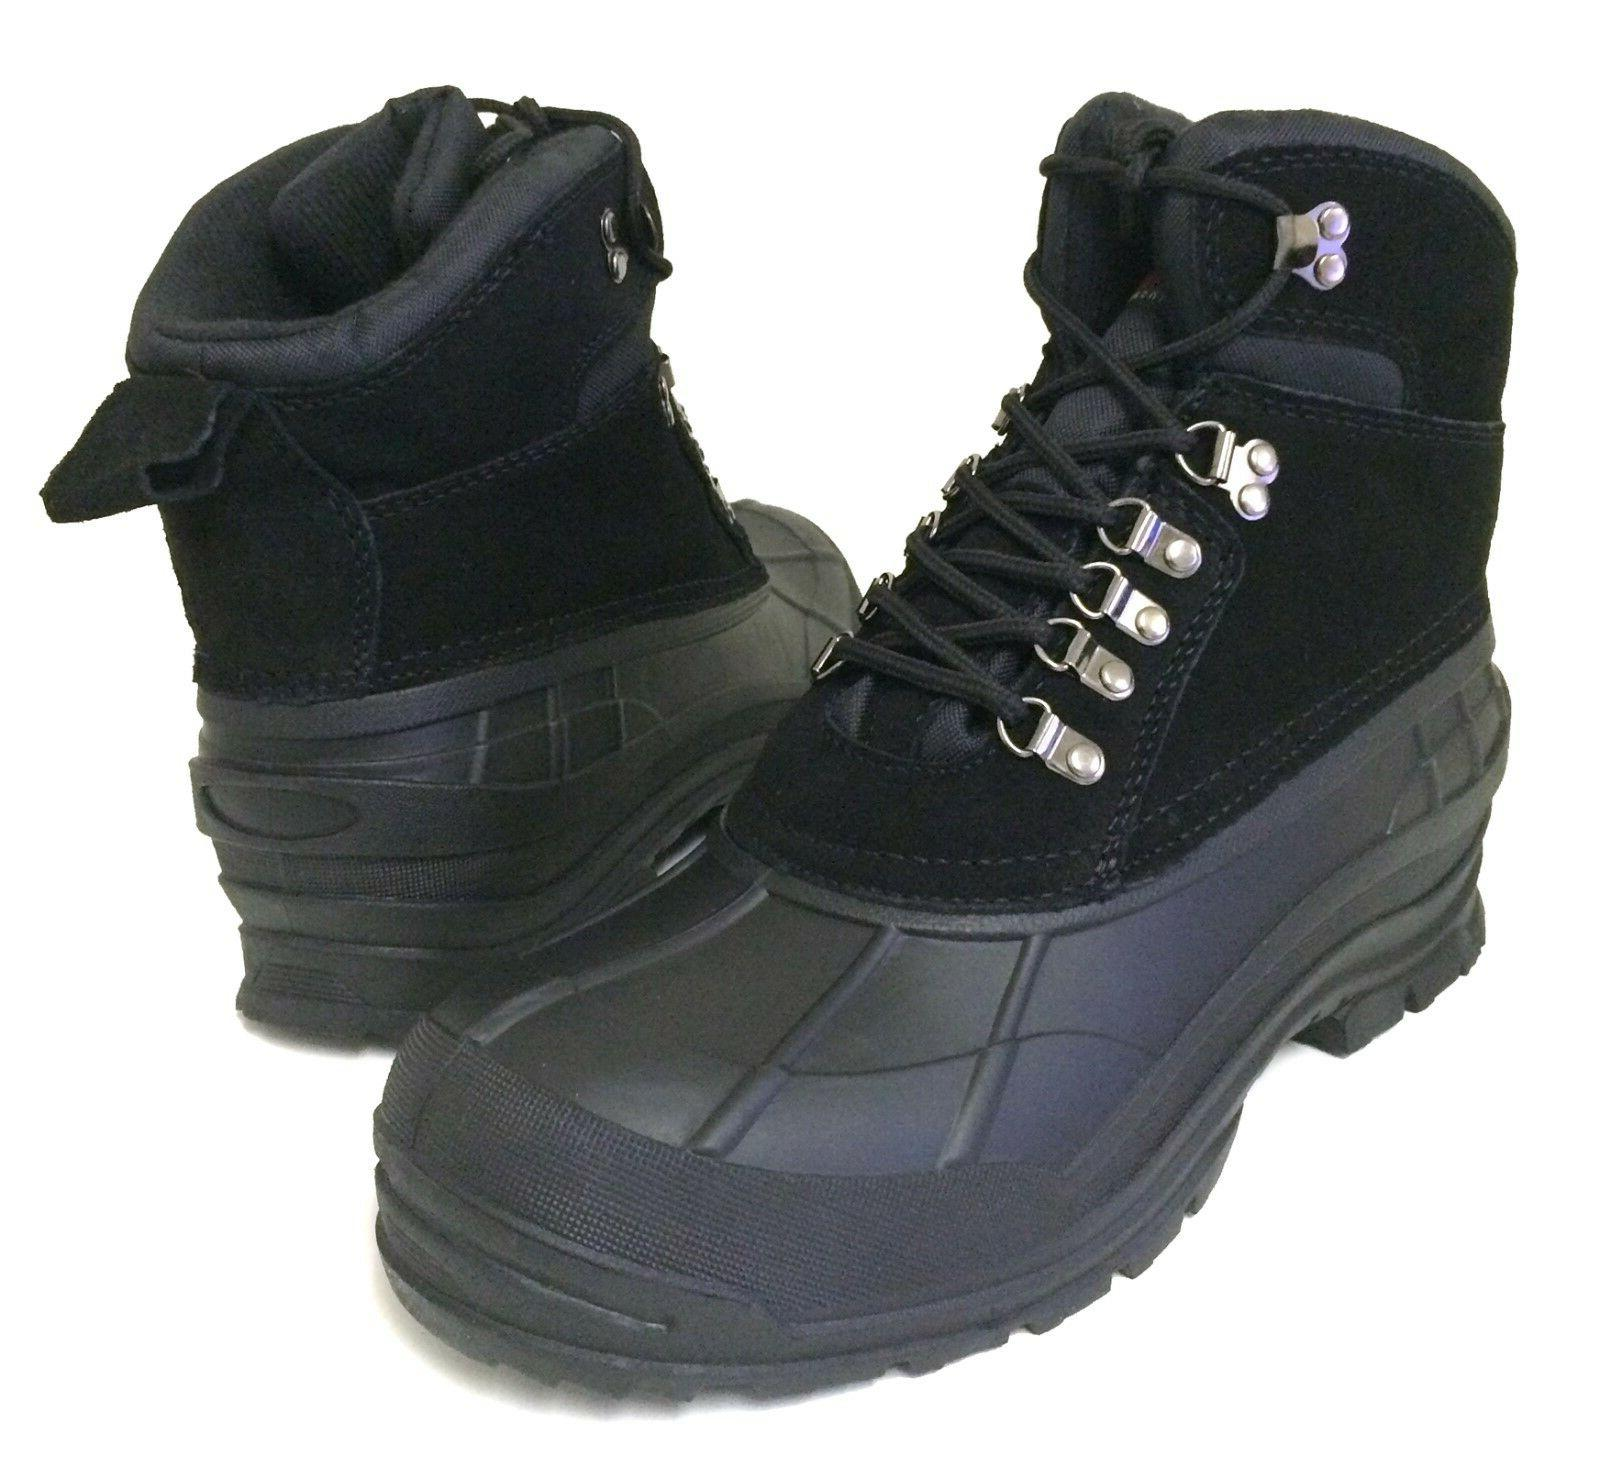 Brand Winter Boots Insulated Hiking Sizes